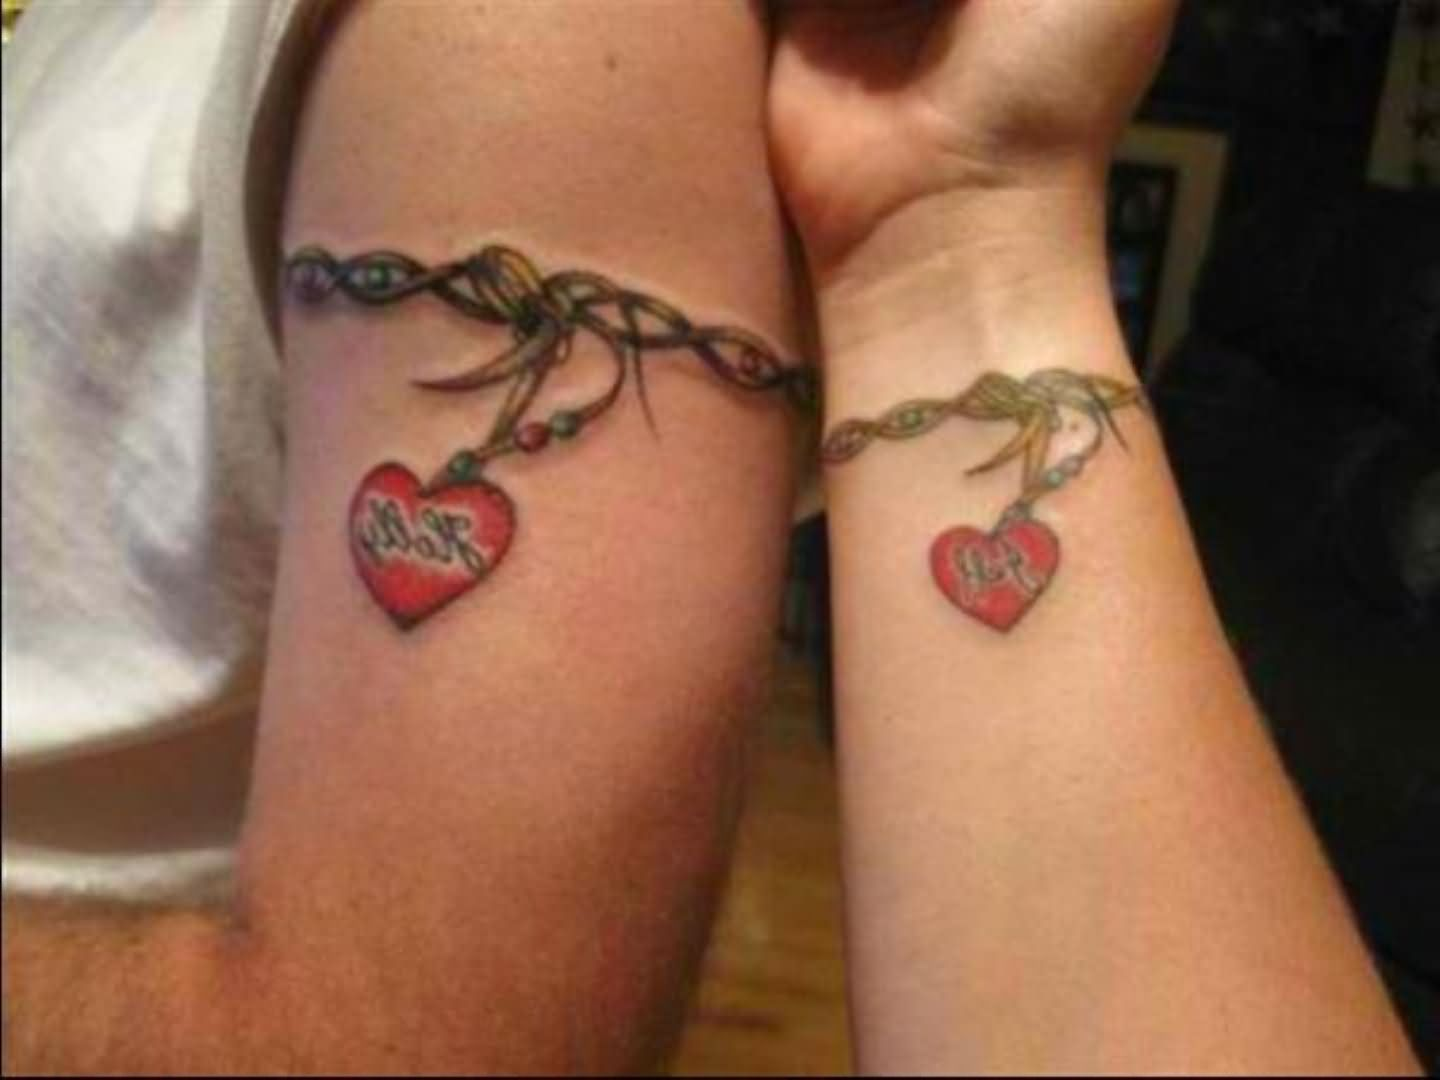 Tattoo ideas for married couples - Armband And Wrist Band Couple Tattoo